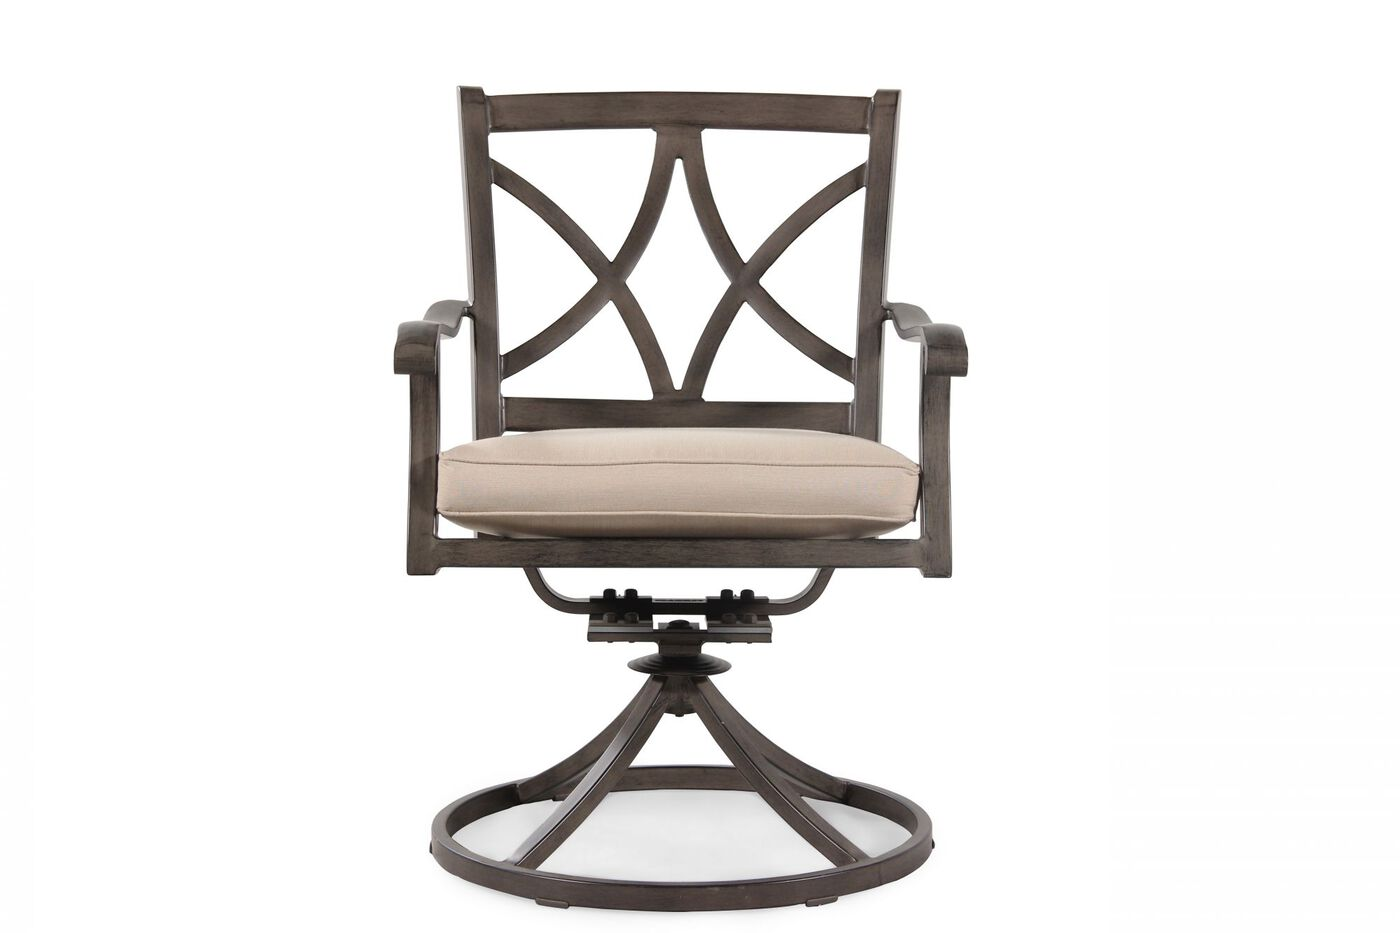 100 Mathis Brothers Outdoor Patio Furniture  : AGIO AAH04201 from kenwsmith.com size 1400 x 933 jpeg 60kB